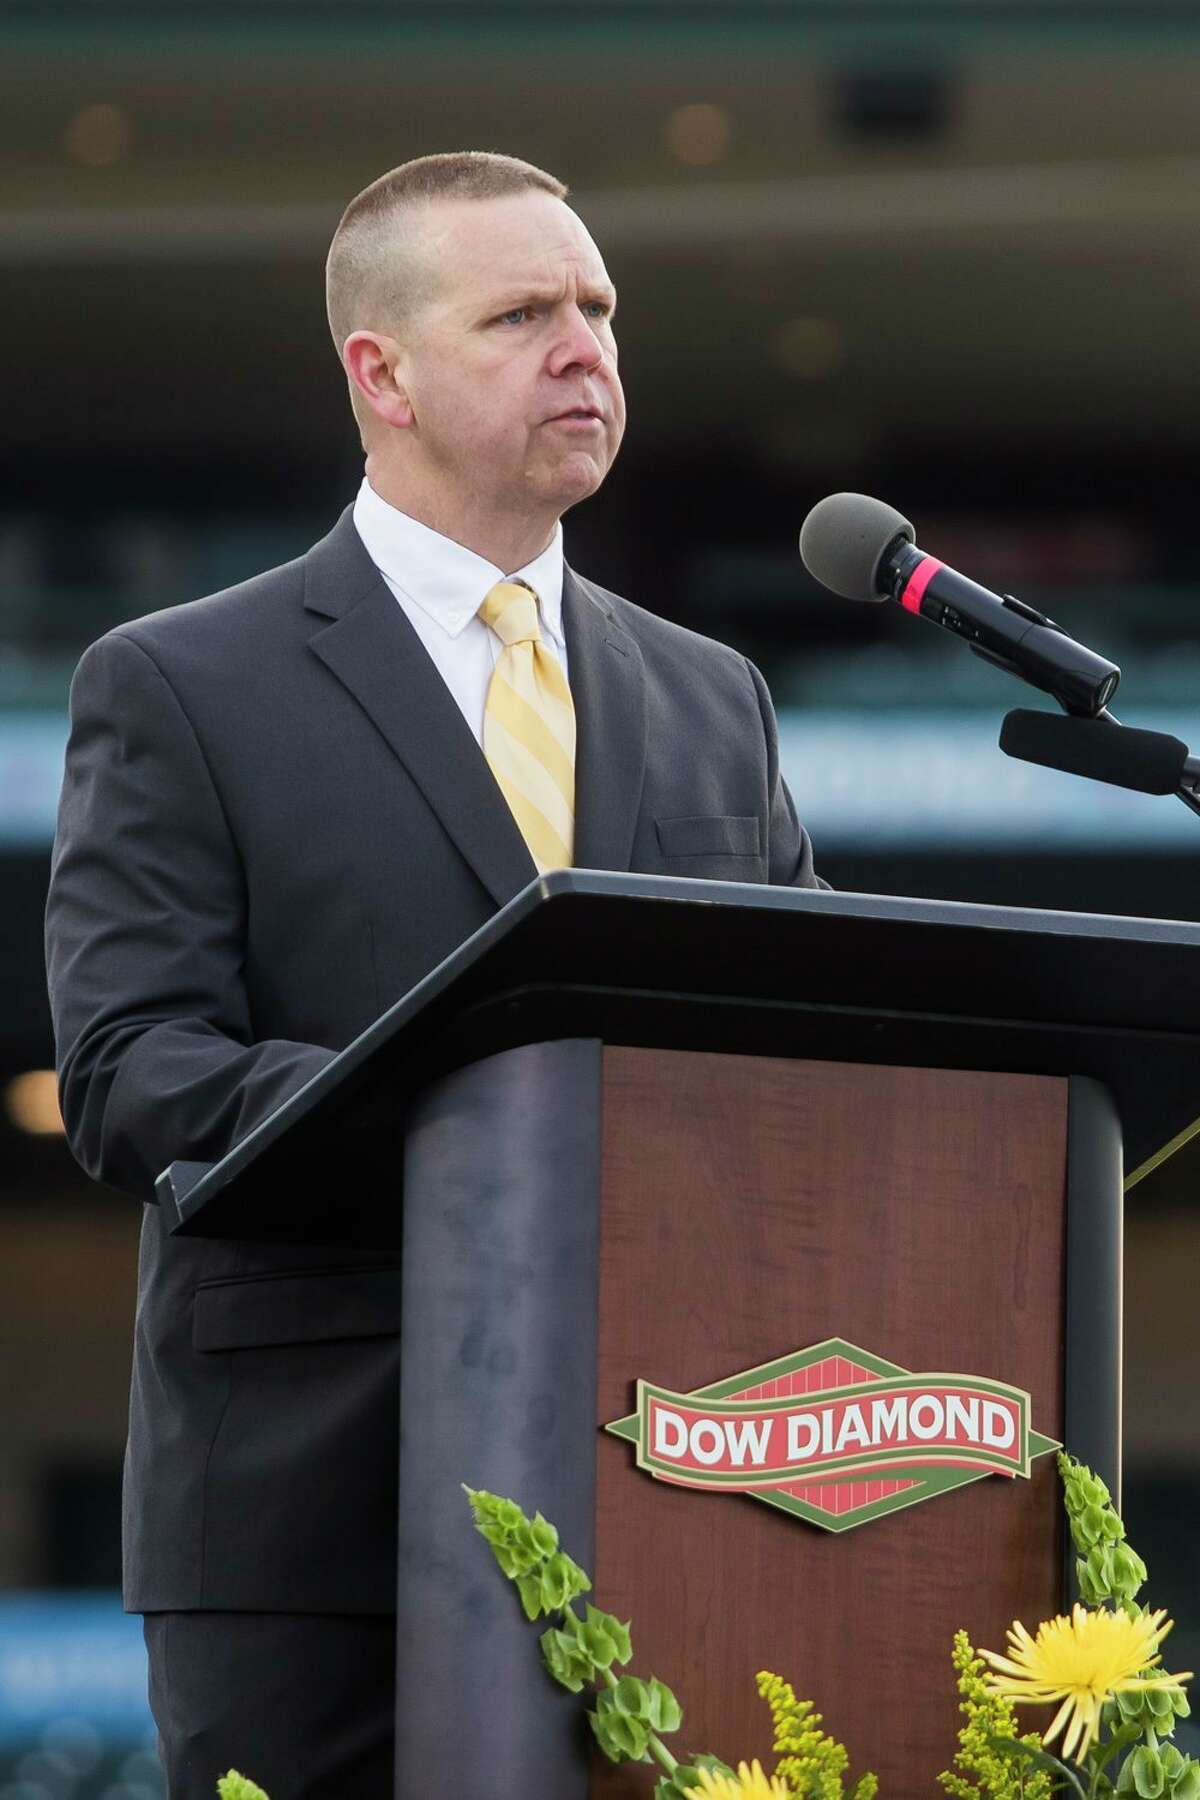 H. H. Dow High School Principal Ted Davis addresses the Class of 2021 as they celebrate with a commencement ceremony Friday at Dow Diamond in Midland. (Katy Kildee/kkildee@mdn.net)